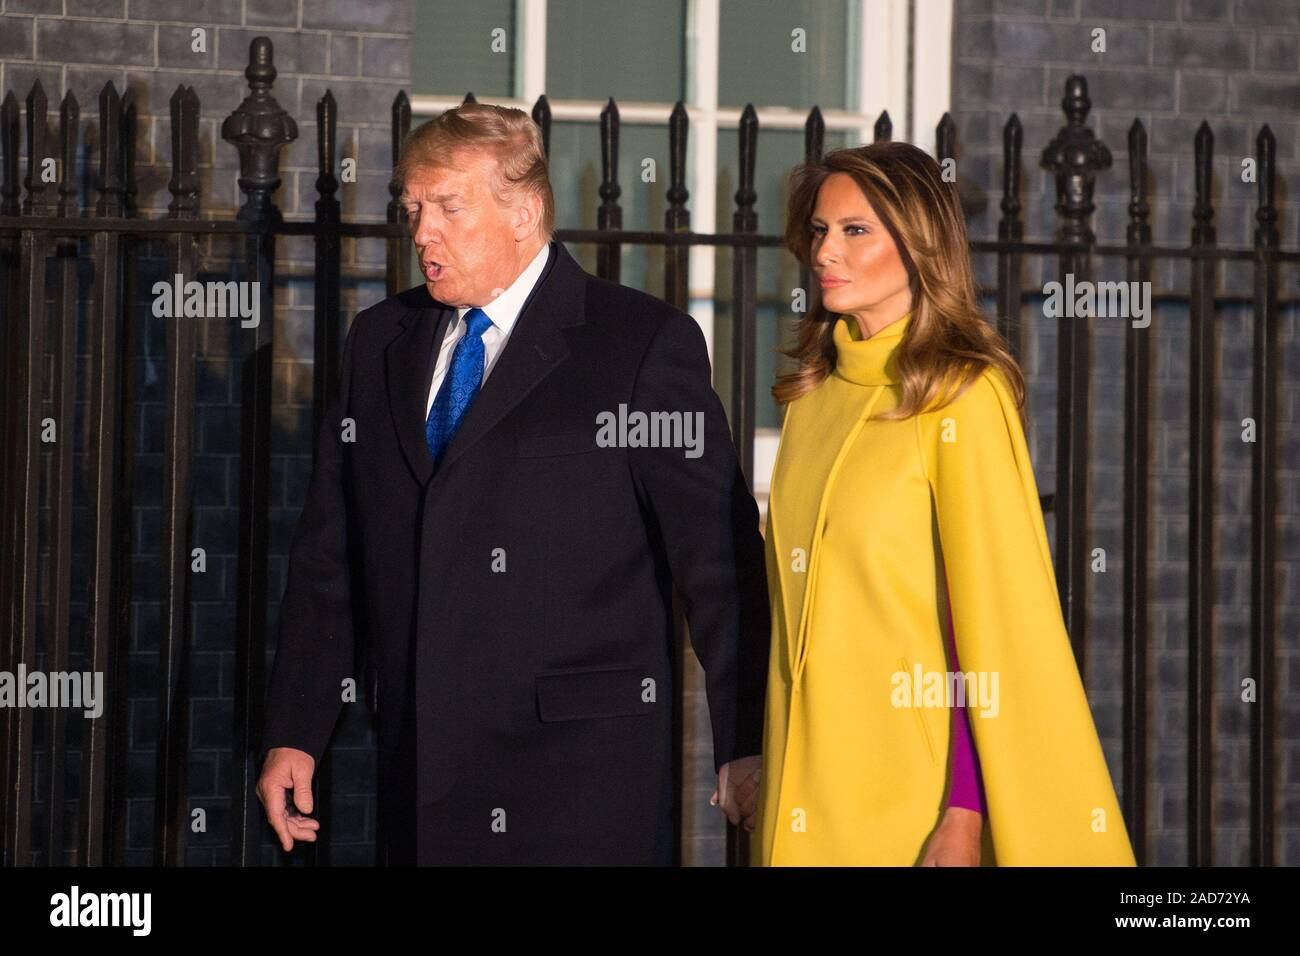 London, UK. 3 December 2019.  Pictured: (left) Donald J Trump - 45th President of the United Starts of America, (right) Melania Trump - First Lady. Boris Johnson, UK Prime Minister hosts a reception with foreign leaders ahead of the NATO (North Atlantic Treaty Organisation) meeting on the 4th December. Credit: Colin Fisher/Alamy Live News Stock Photo